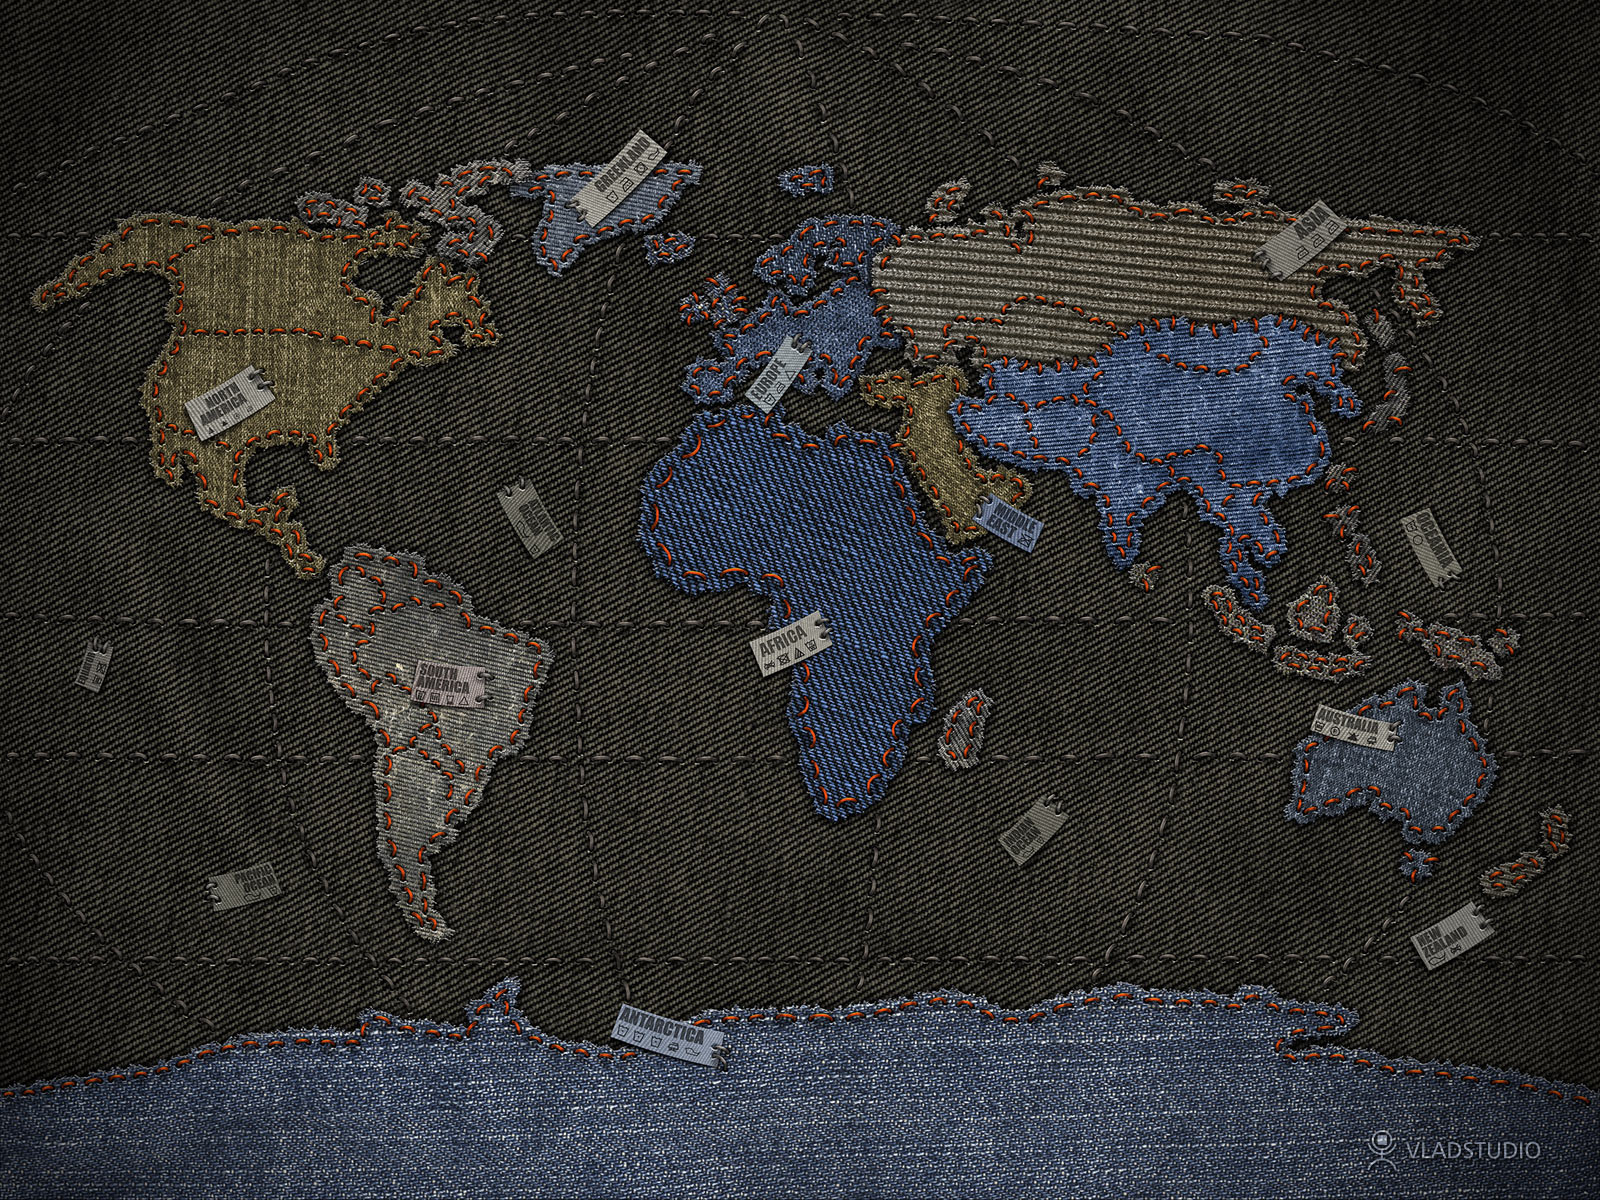 Wallpaper map wallpapersafari 15 really cool world map wallpapers blaberize 1600x1200 gumiabroncs Images